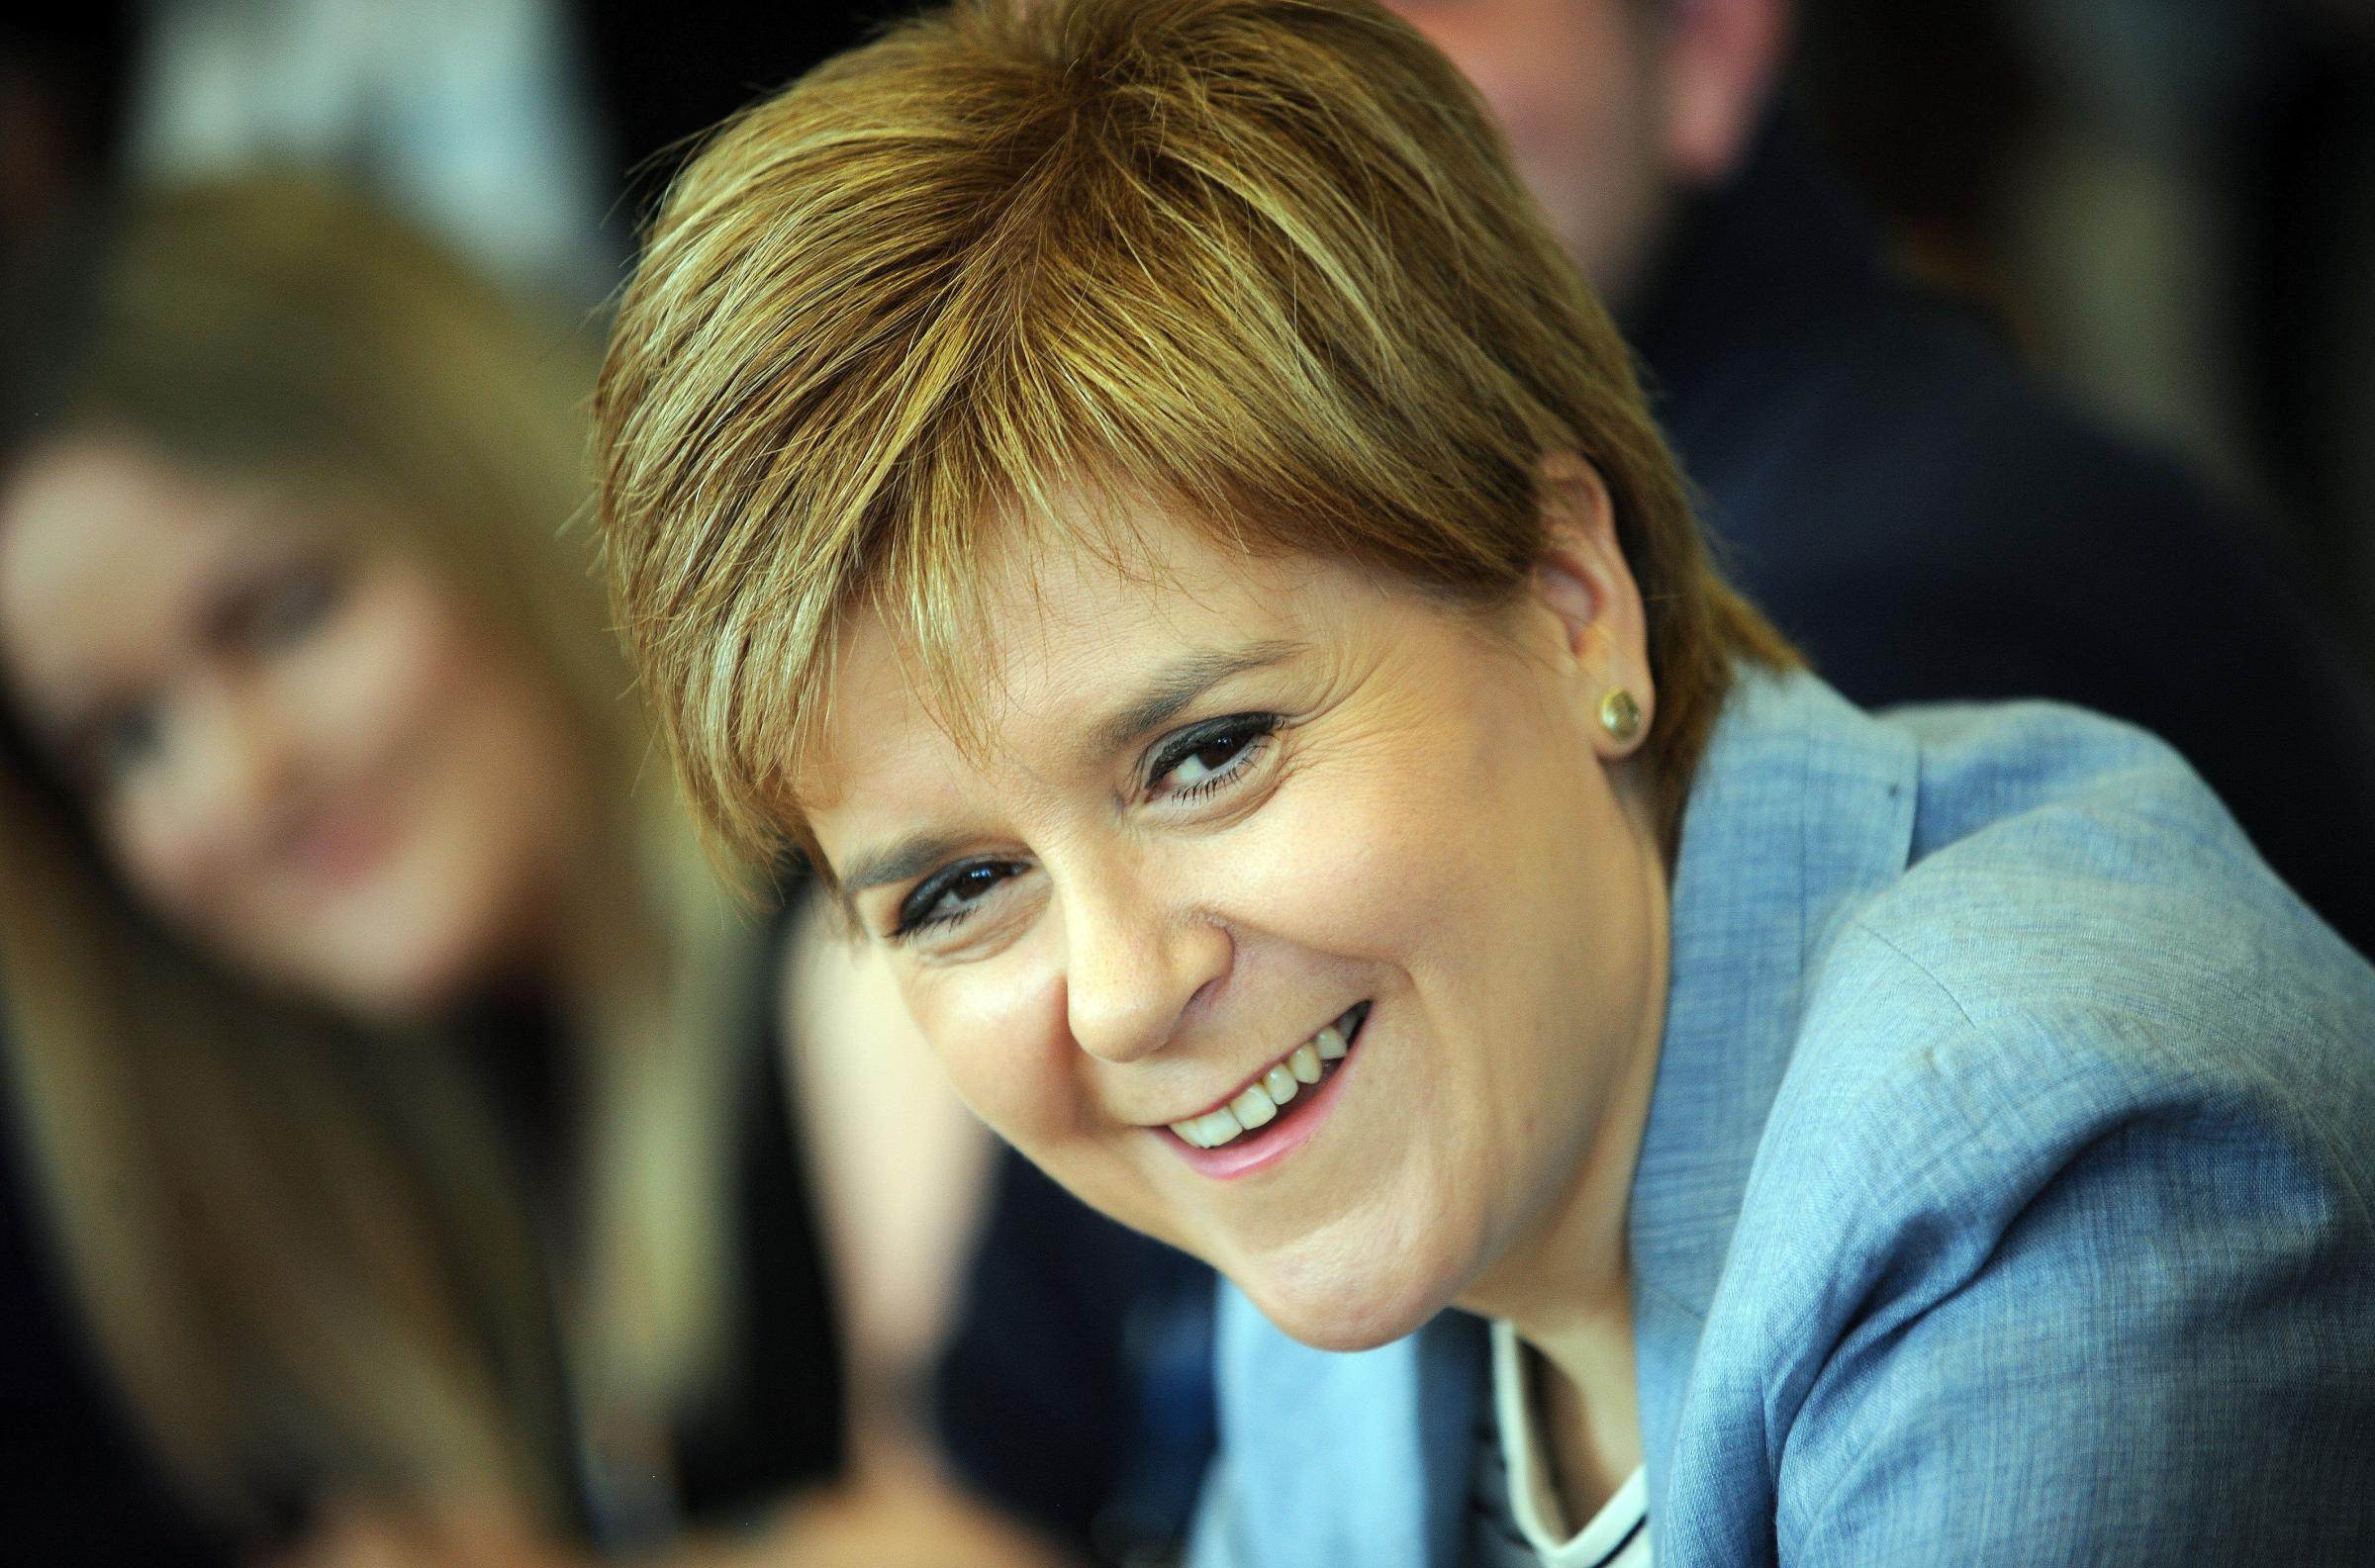 SNP leader on family, marriage and coping with stress of the job